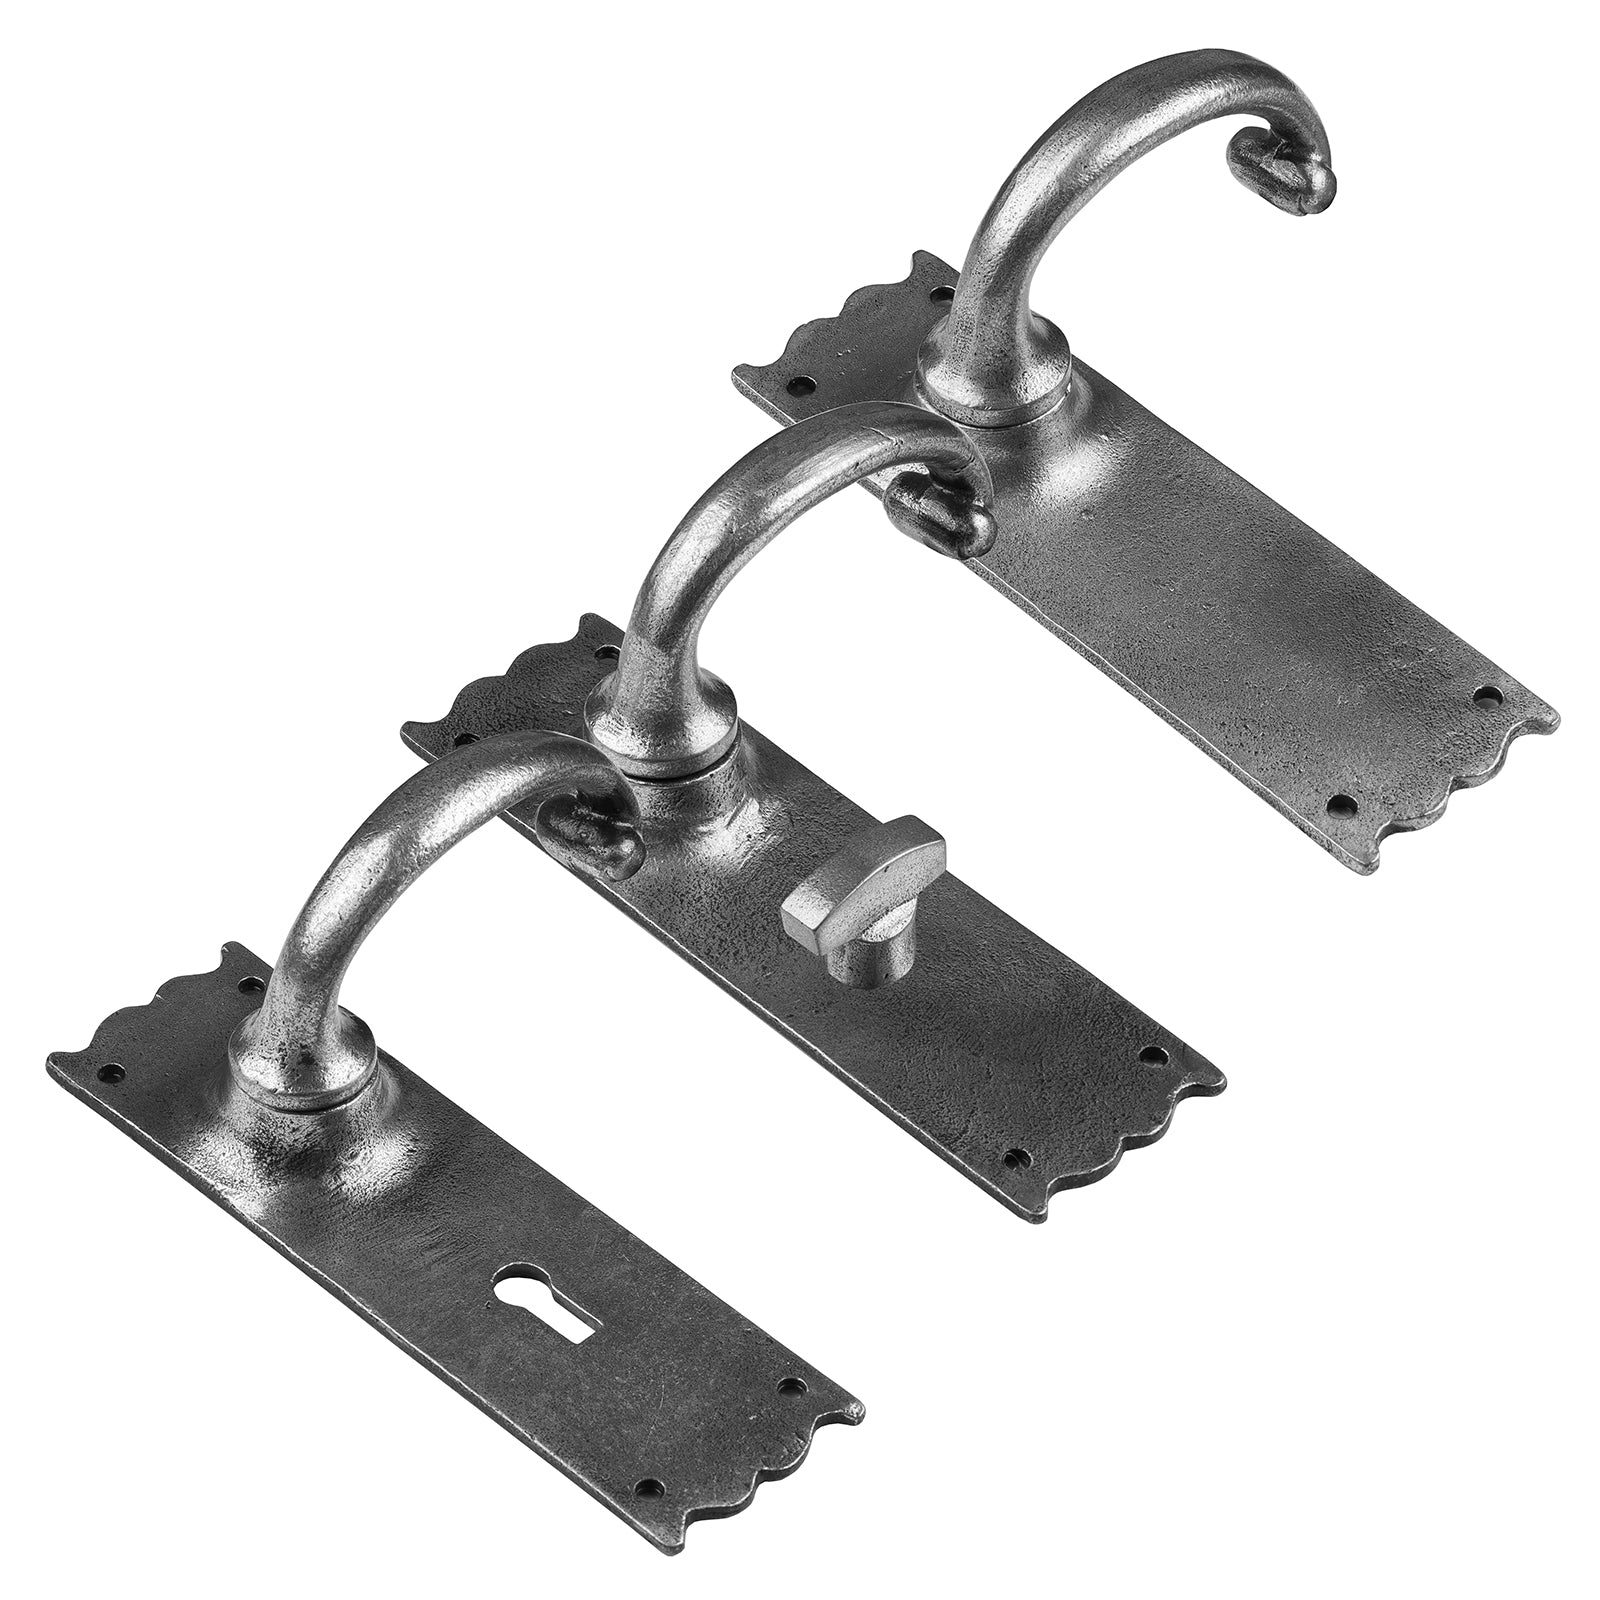 Cottage lever latch lock and bathroom door handles